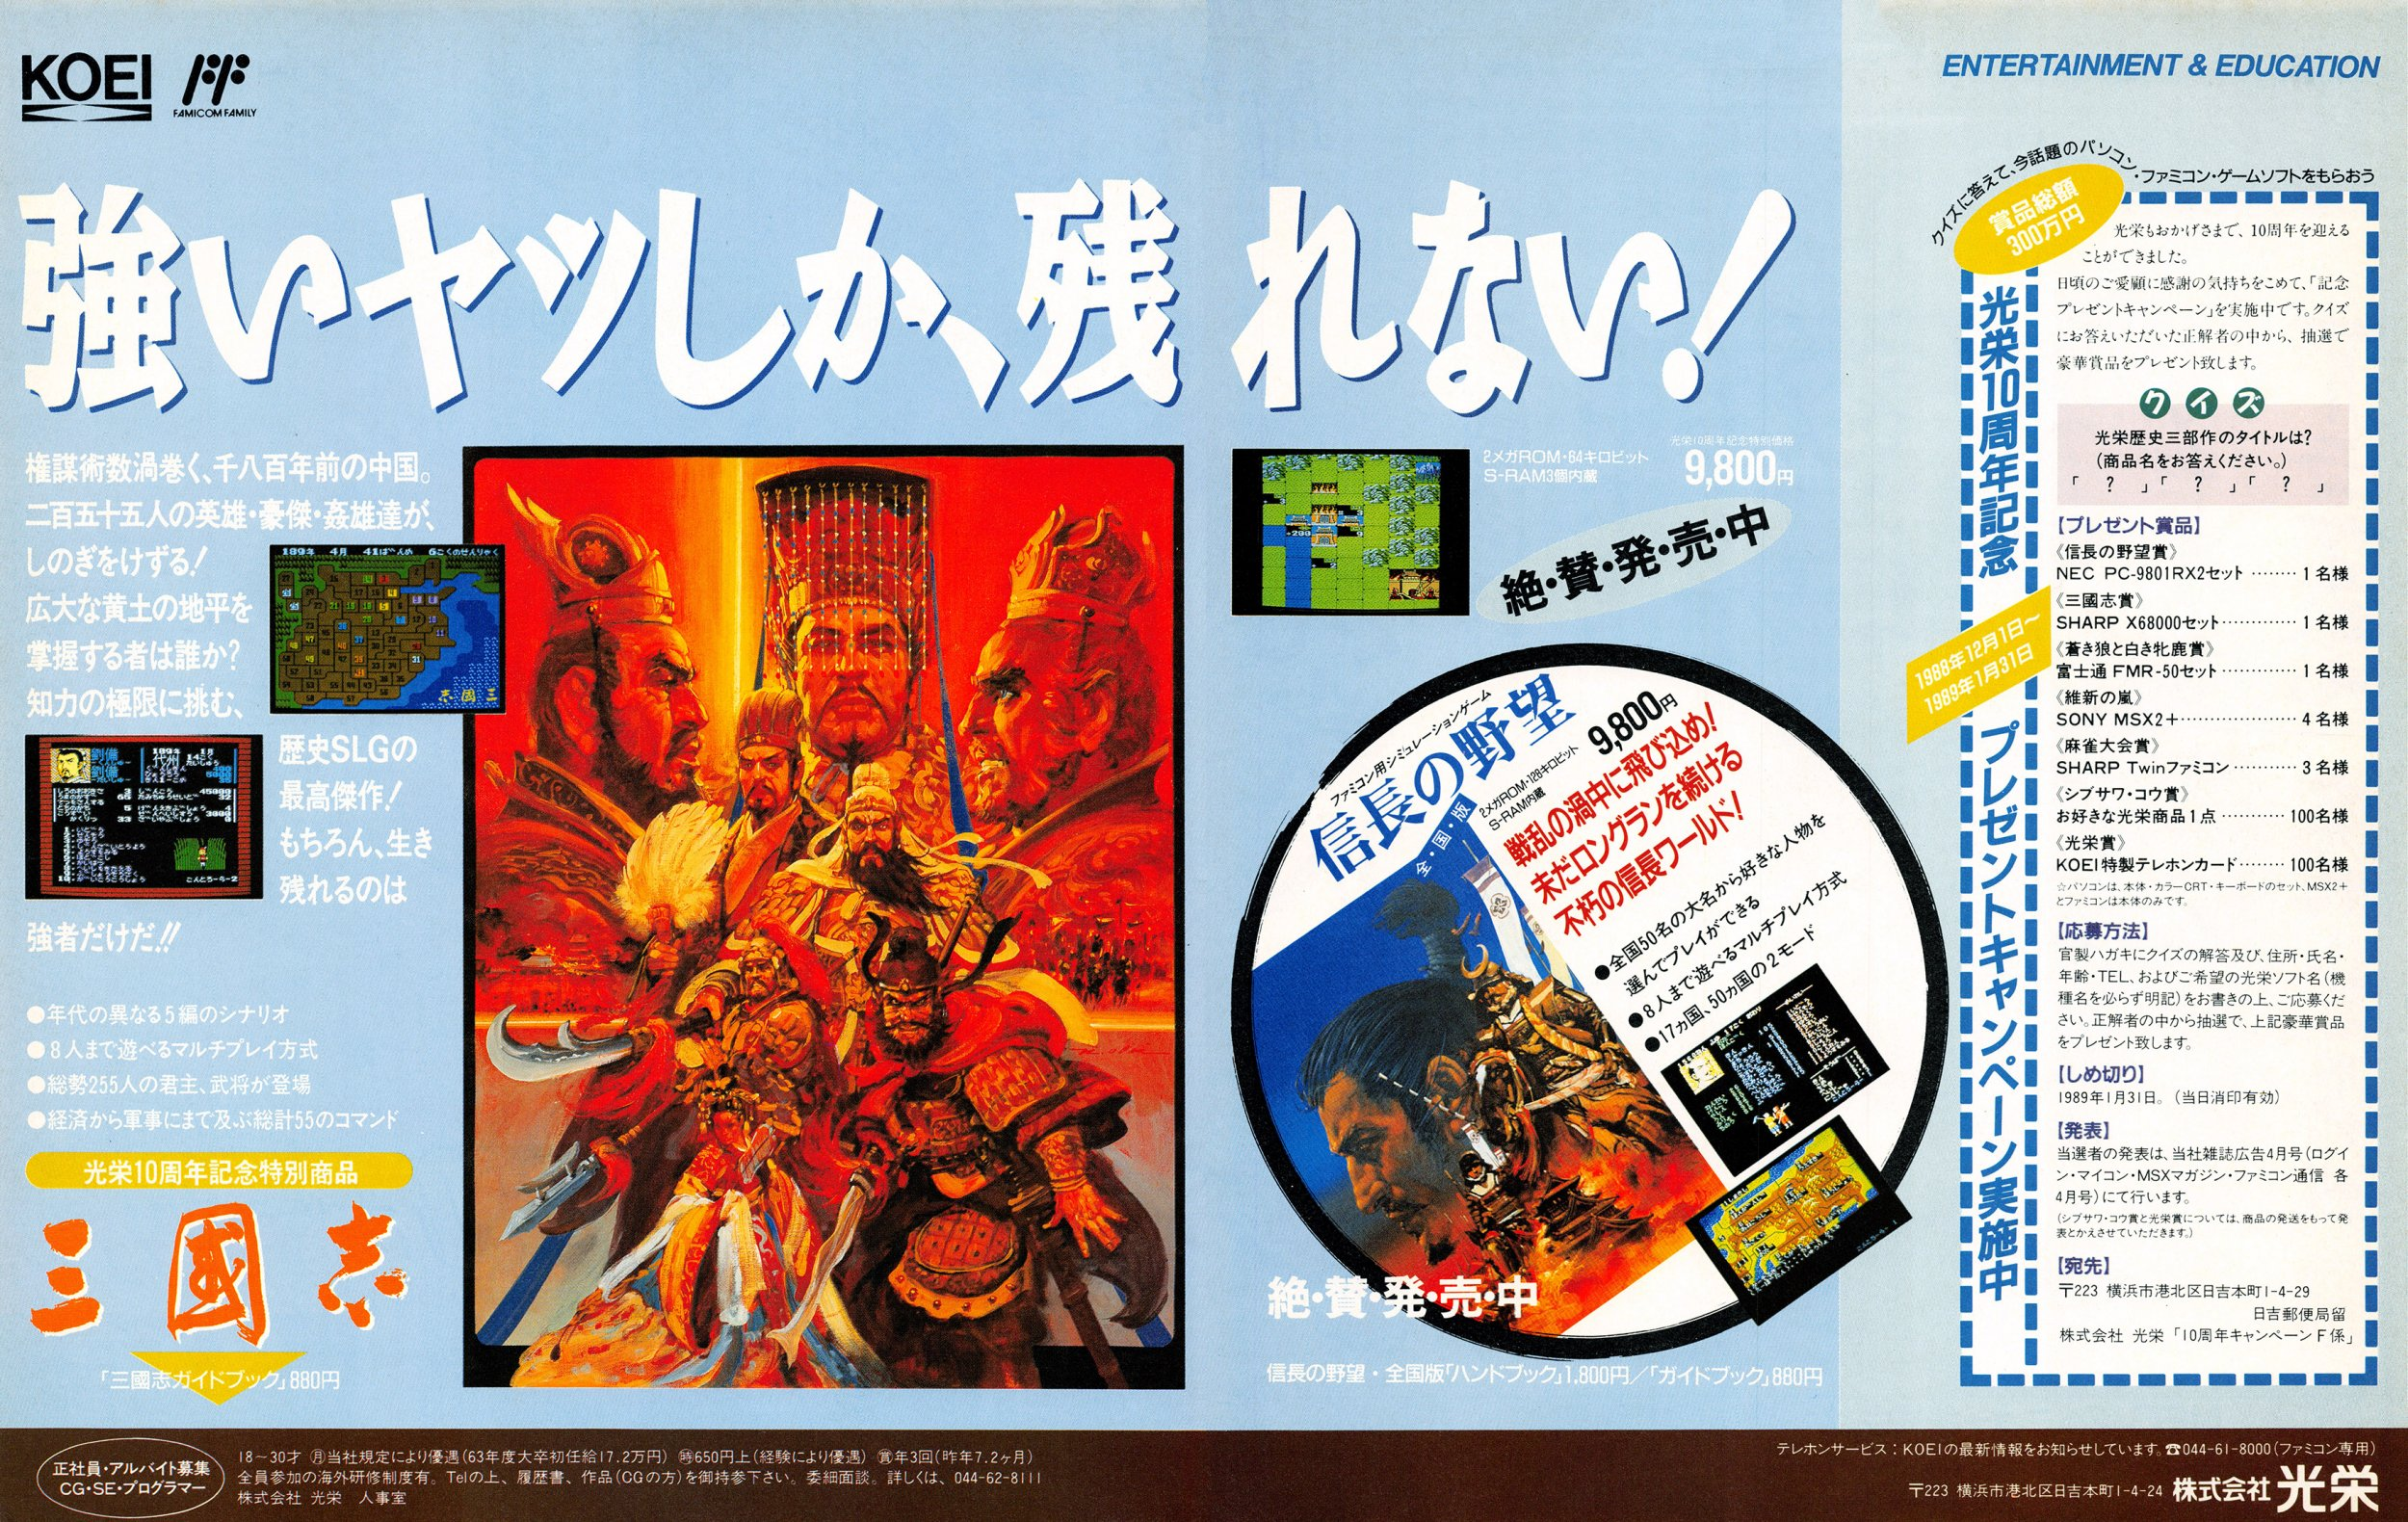 Romance of the Three Kingdoms, Nobunaga's Ambition (Japan)